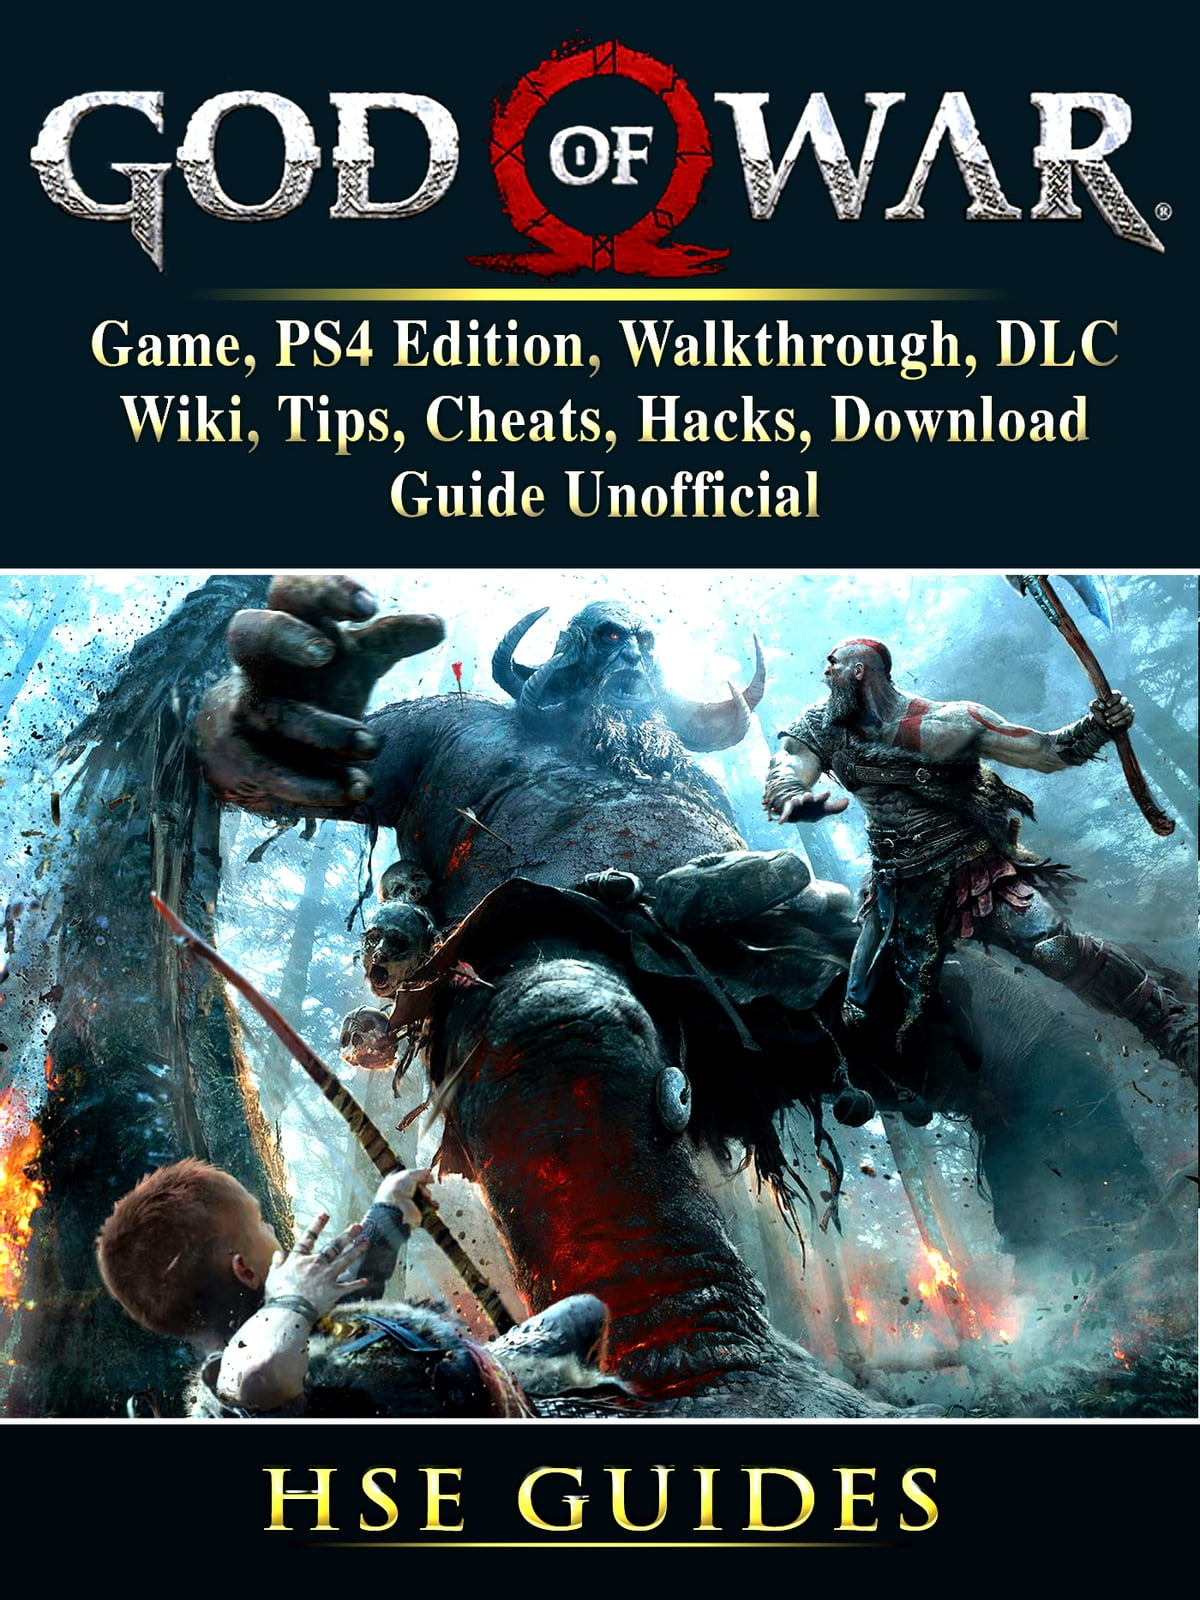 God of War 4 Game, PS4 Edition, Walkthrough, DLC, Wiki, Tips, Cheats,  Hacks, Download, Guide Unofficial ebook by Hse Games - Rakuten Kobo